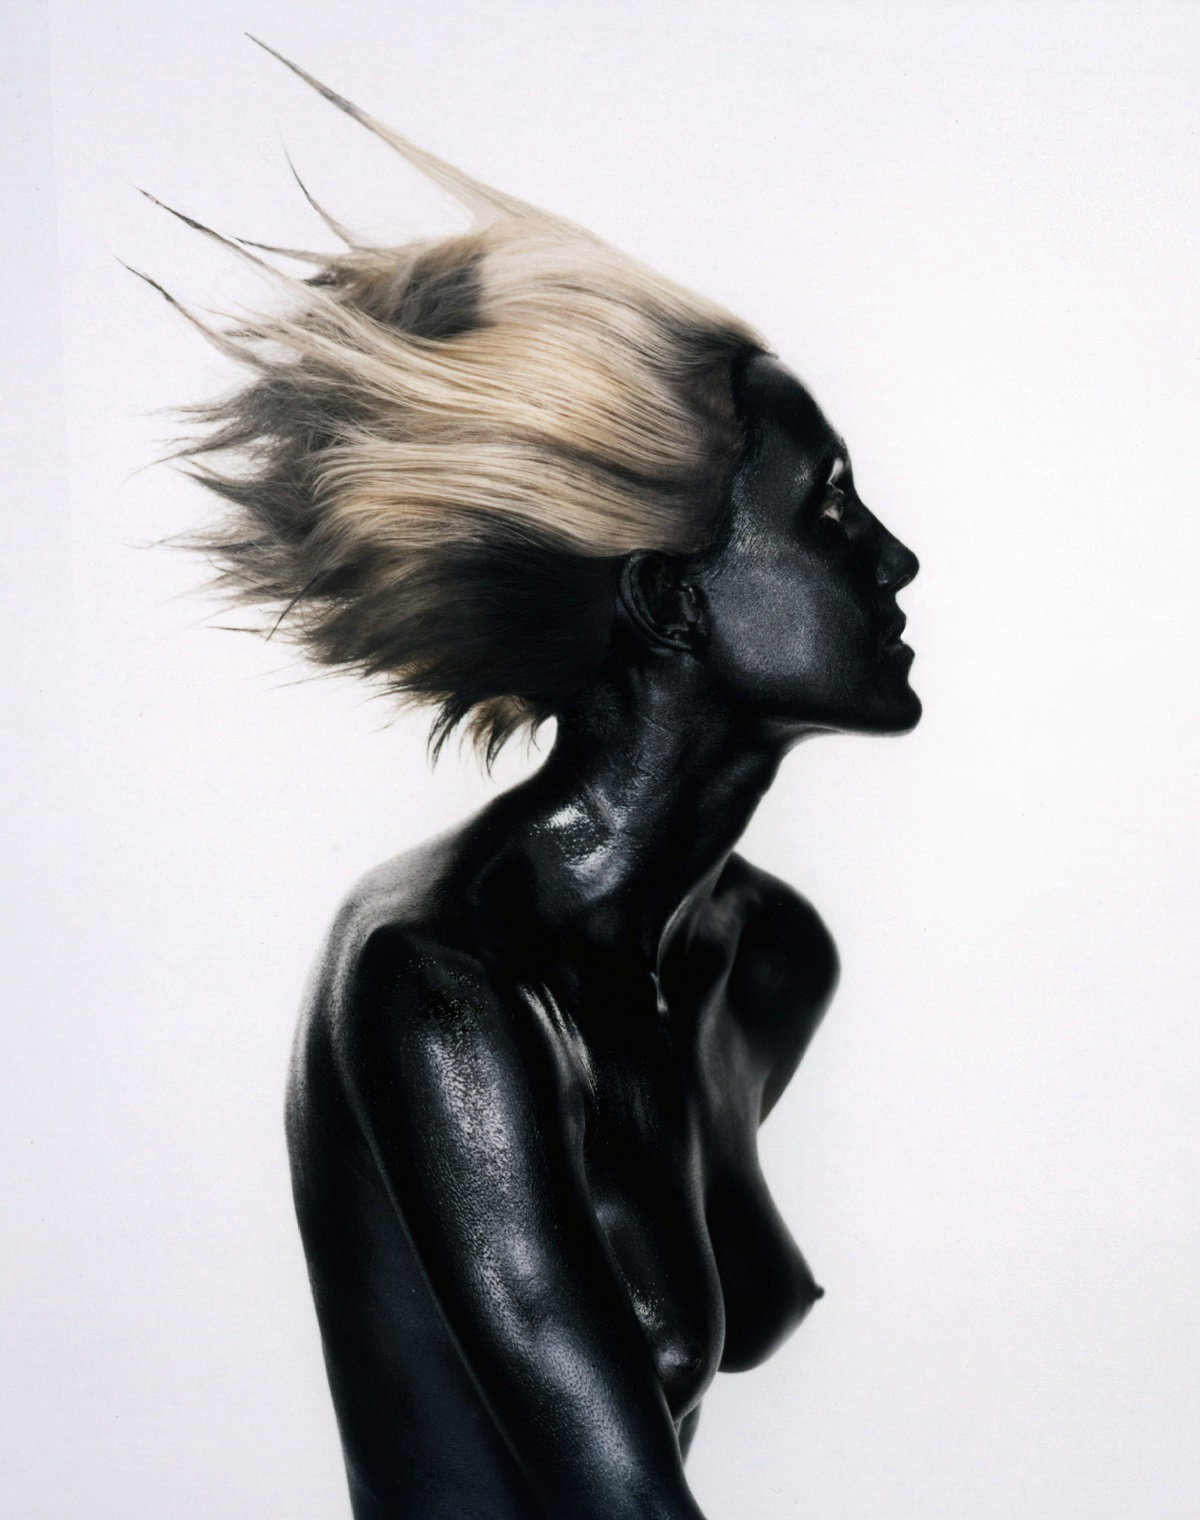 Keith_Harris_Black_Bodies_Collection_1